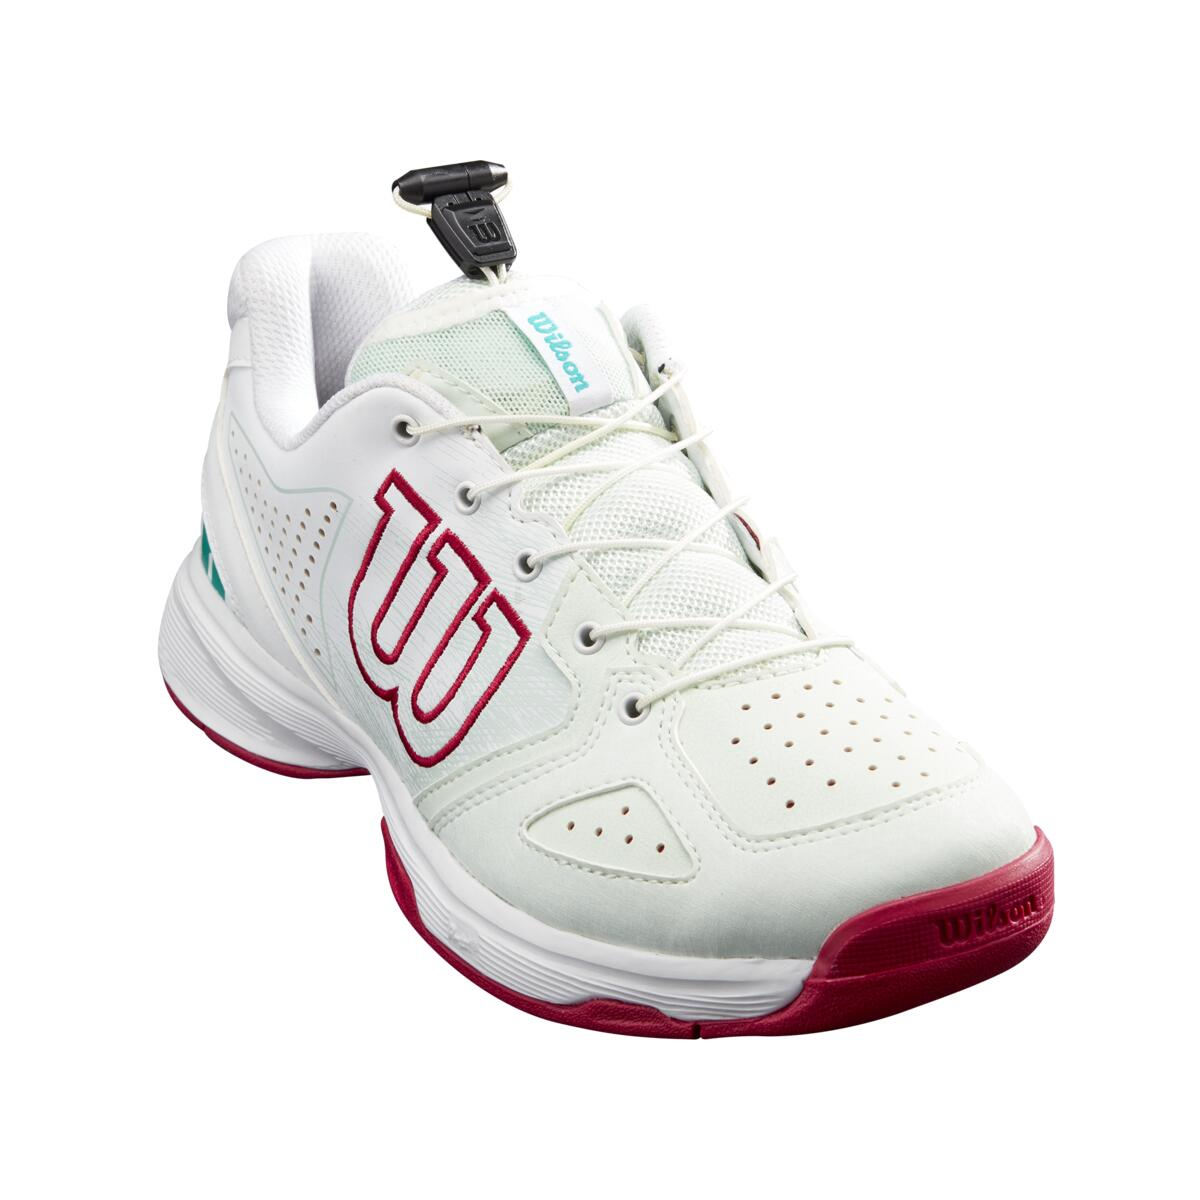 Wilson Kaos QL Junior Tennis Shoe – Soothing Sea/White/Sangria